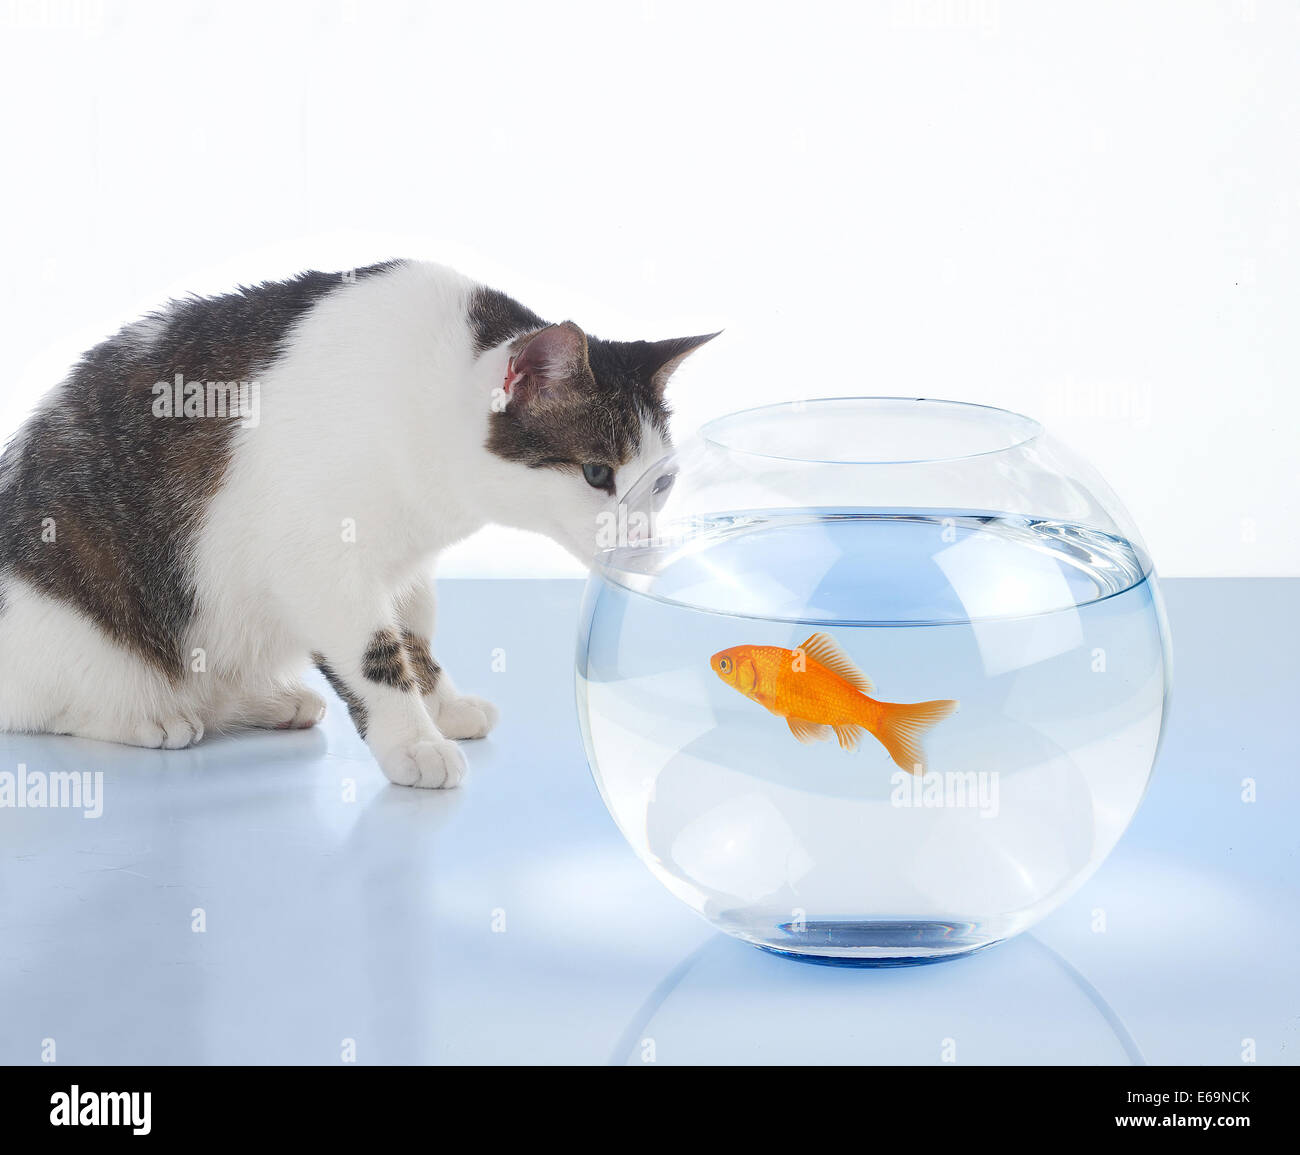 fishbowls stockfotos fishbowls bilder alamy. Black Bedroom Furniture Sets. Home Design Ideas